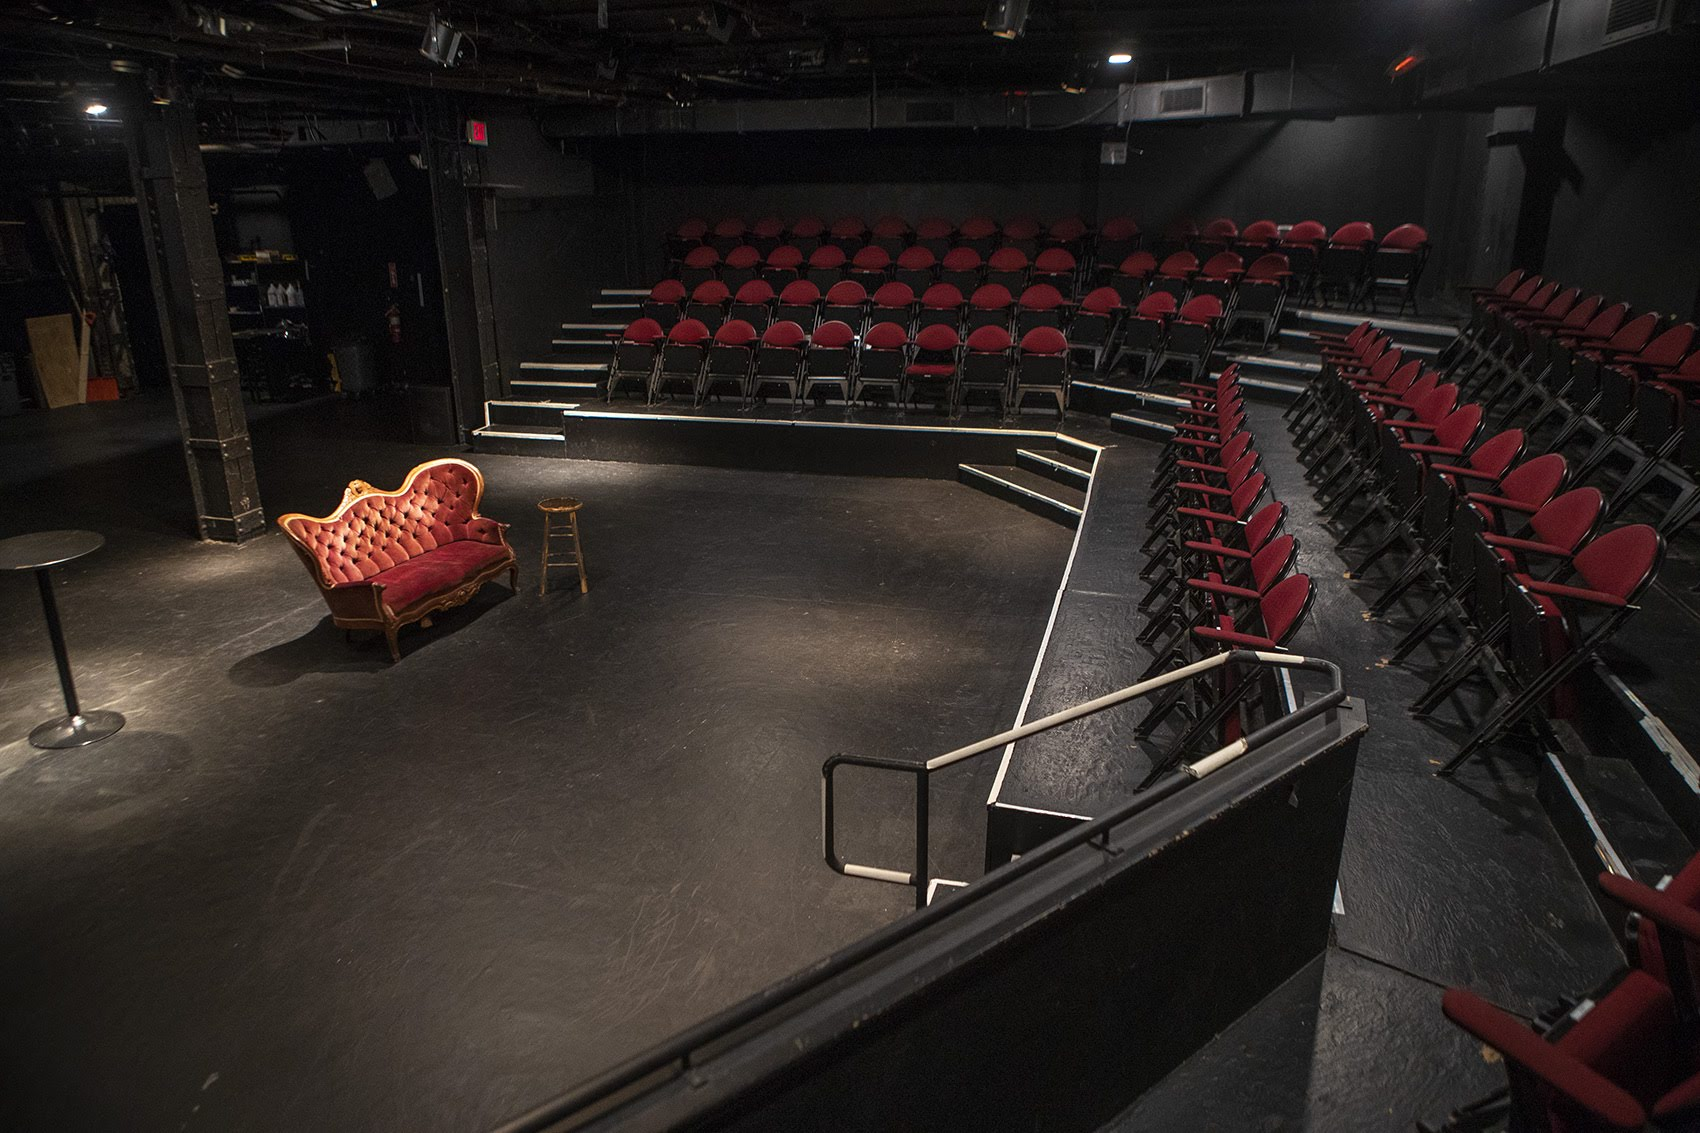 Boston performance venues, like the Plaza Theatre at the Boston Center for the Arts, are not racing to resume performances, despite new state guidelines allowing 50% capacity. (Jesse Costa/WBUR)